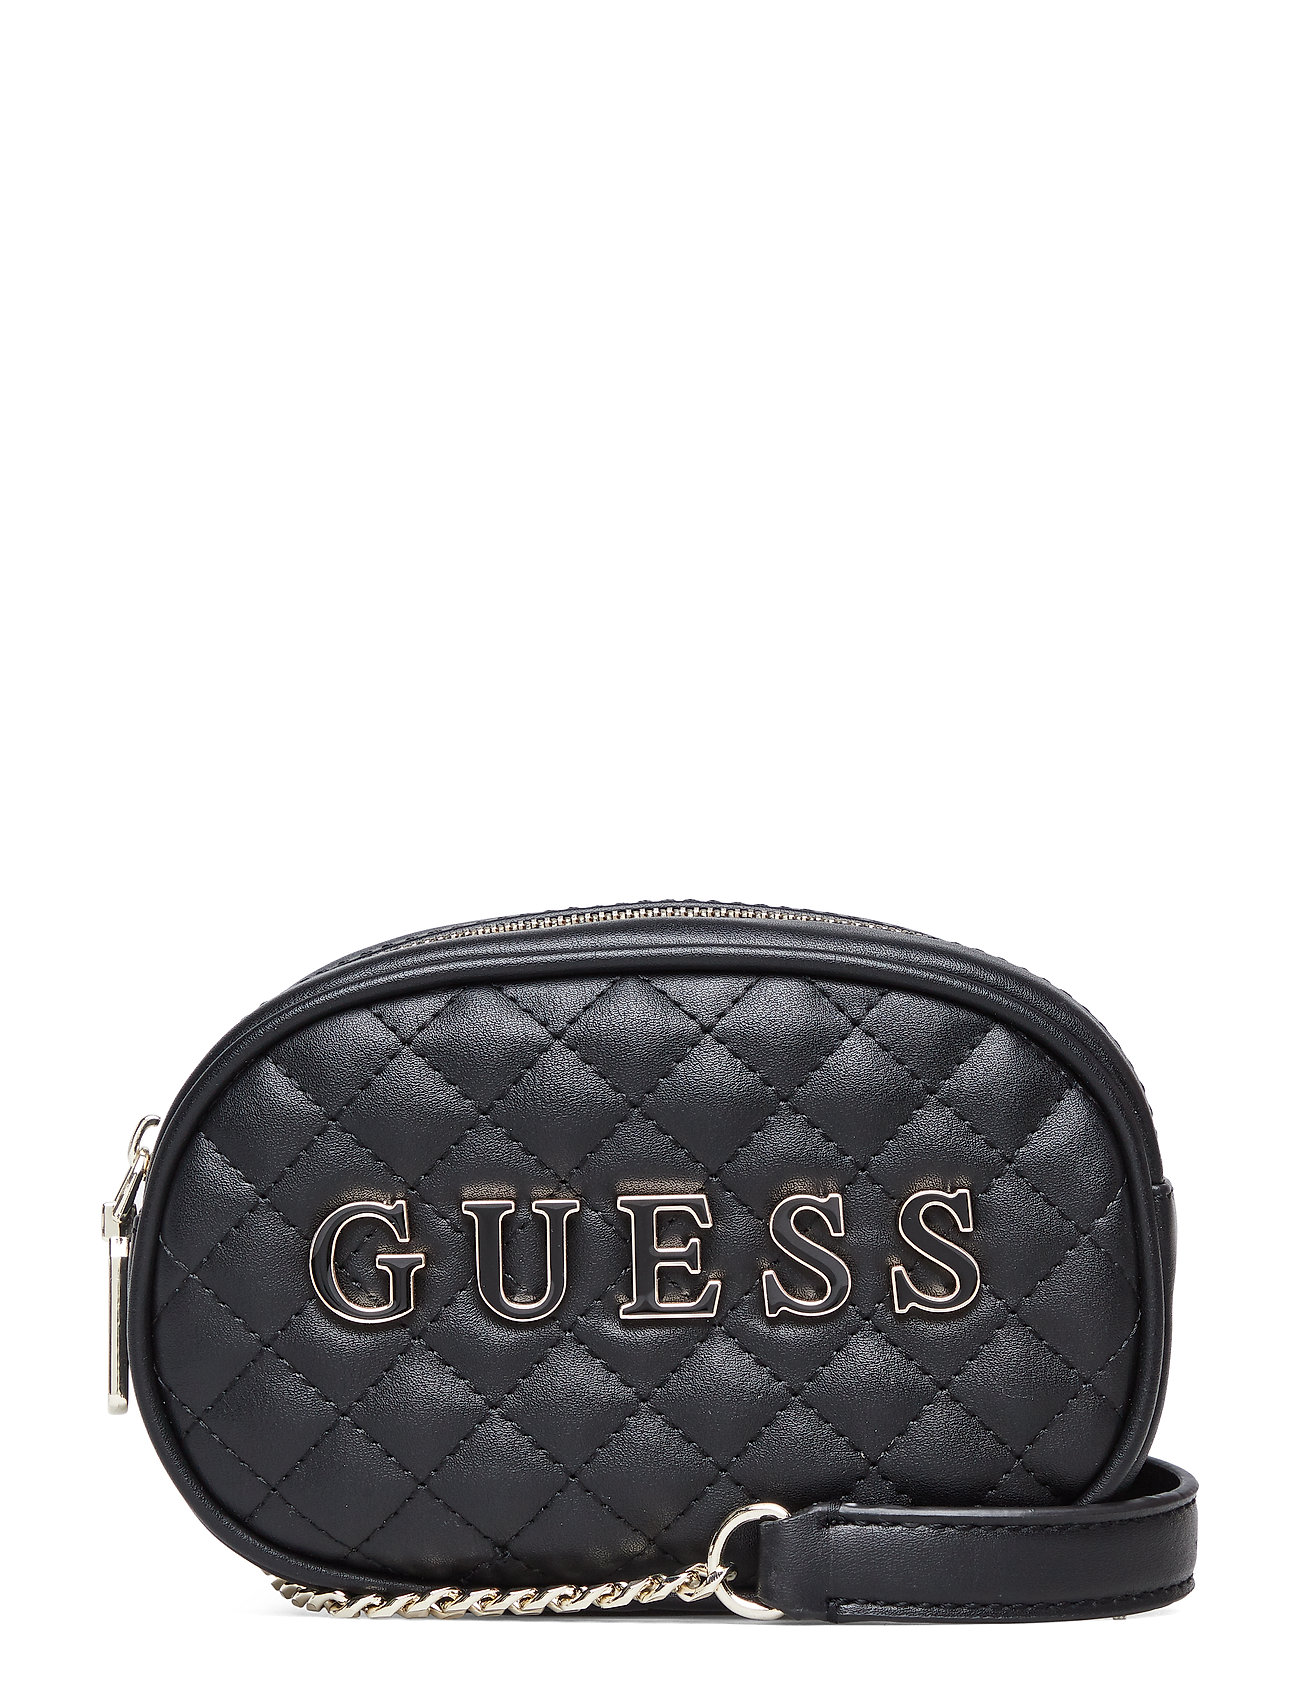 GUESS Guess Passion Xbody Belt Bag Bags Small Shoulder Bags/crossbody Bags Schwarz GUESS